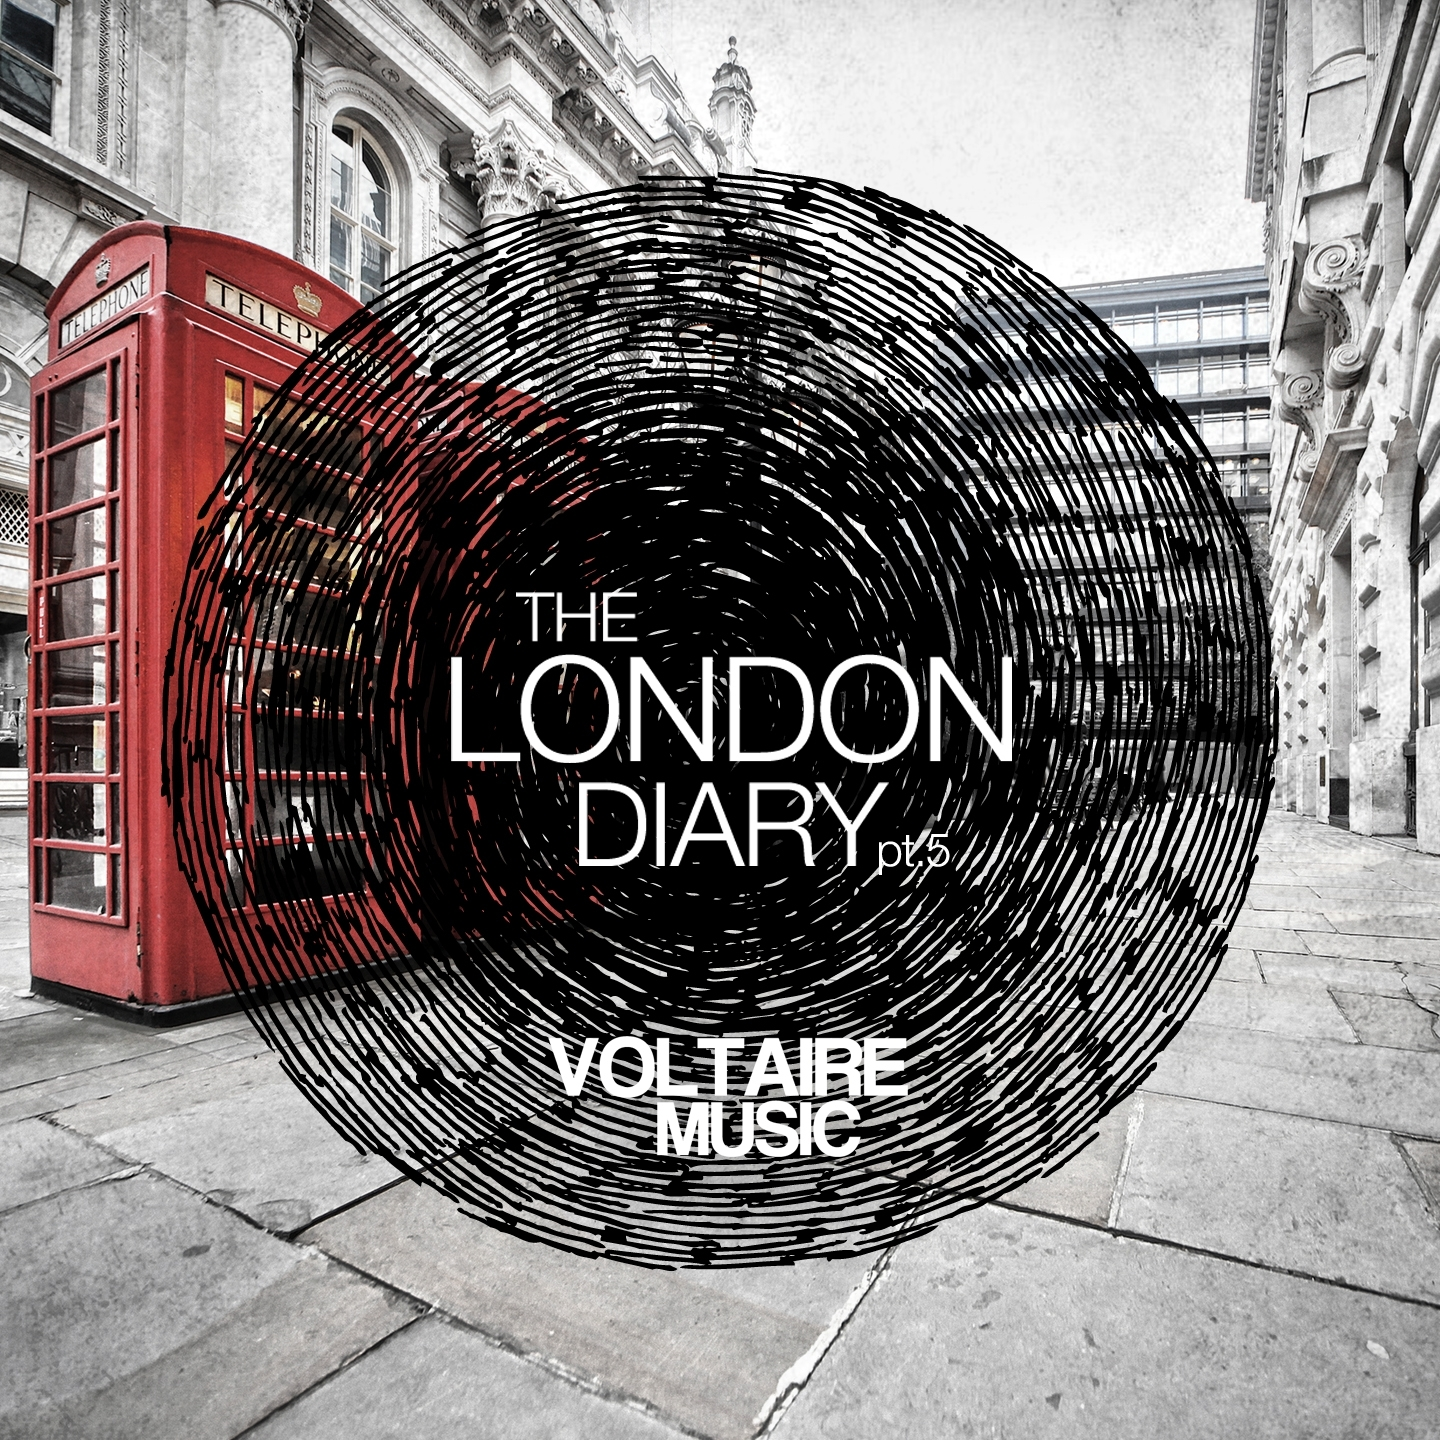 Voltaire Music pres. The London Diary, Pt. 5